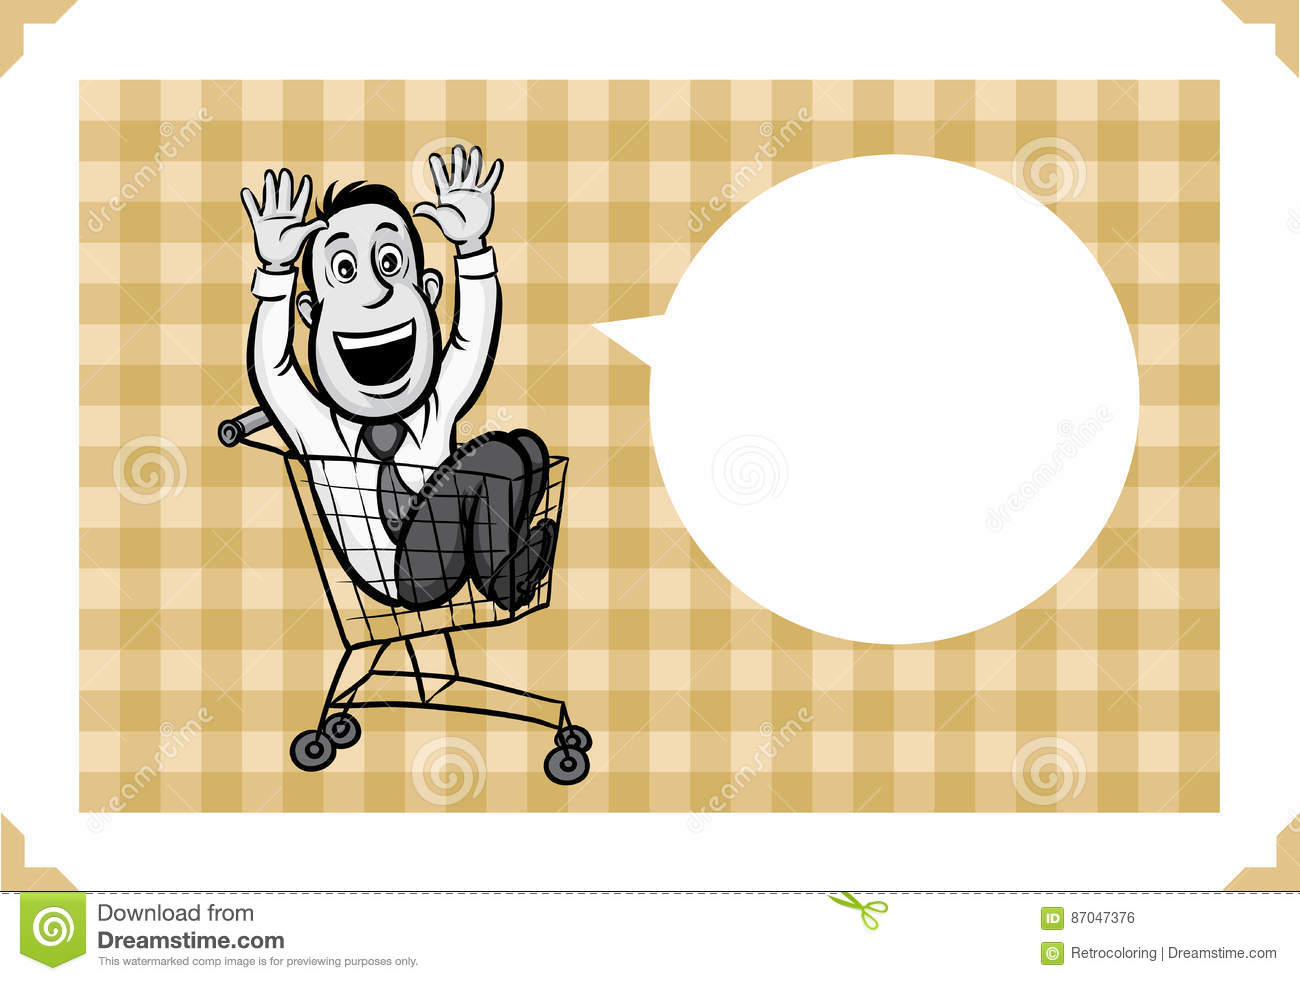 Greeting card with businessman riding in a shopping cart sarcastic meme layered vector illustration